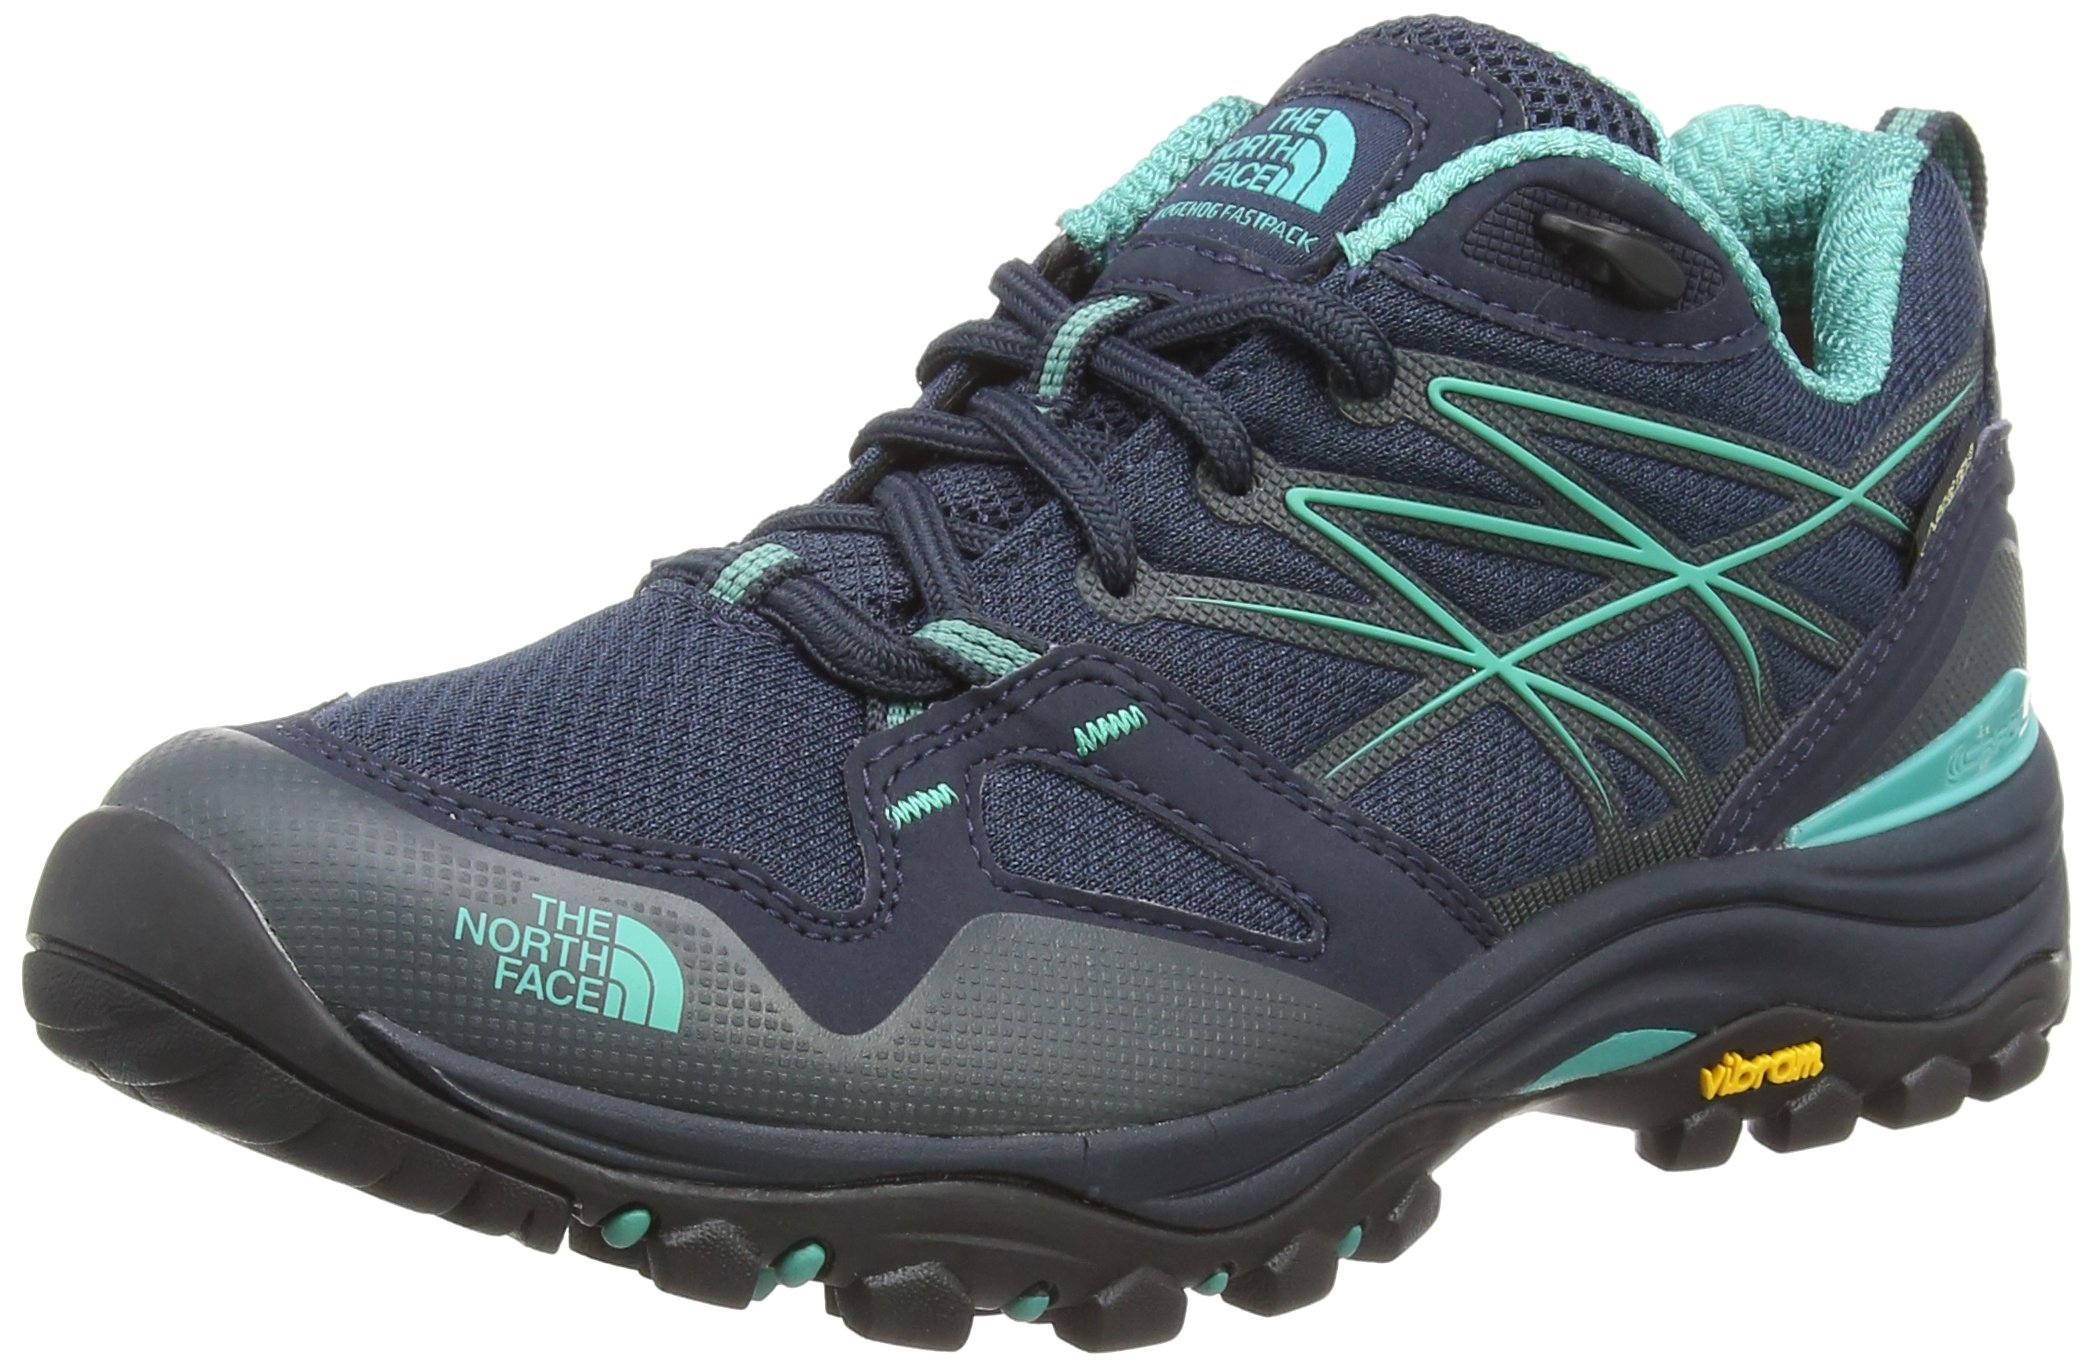 81ukHrBAE%2BL - THE NORTH FACE Women's Hedgehog Fastpack Gore-tex (EU) Low Rise Hiking Boots